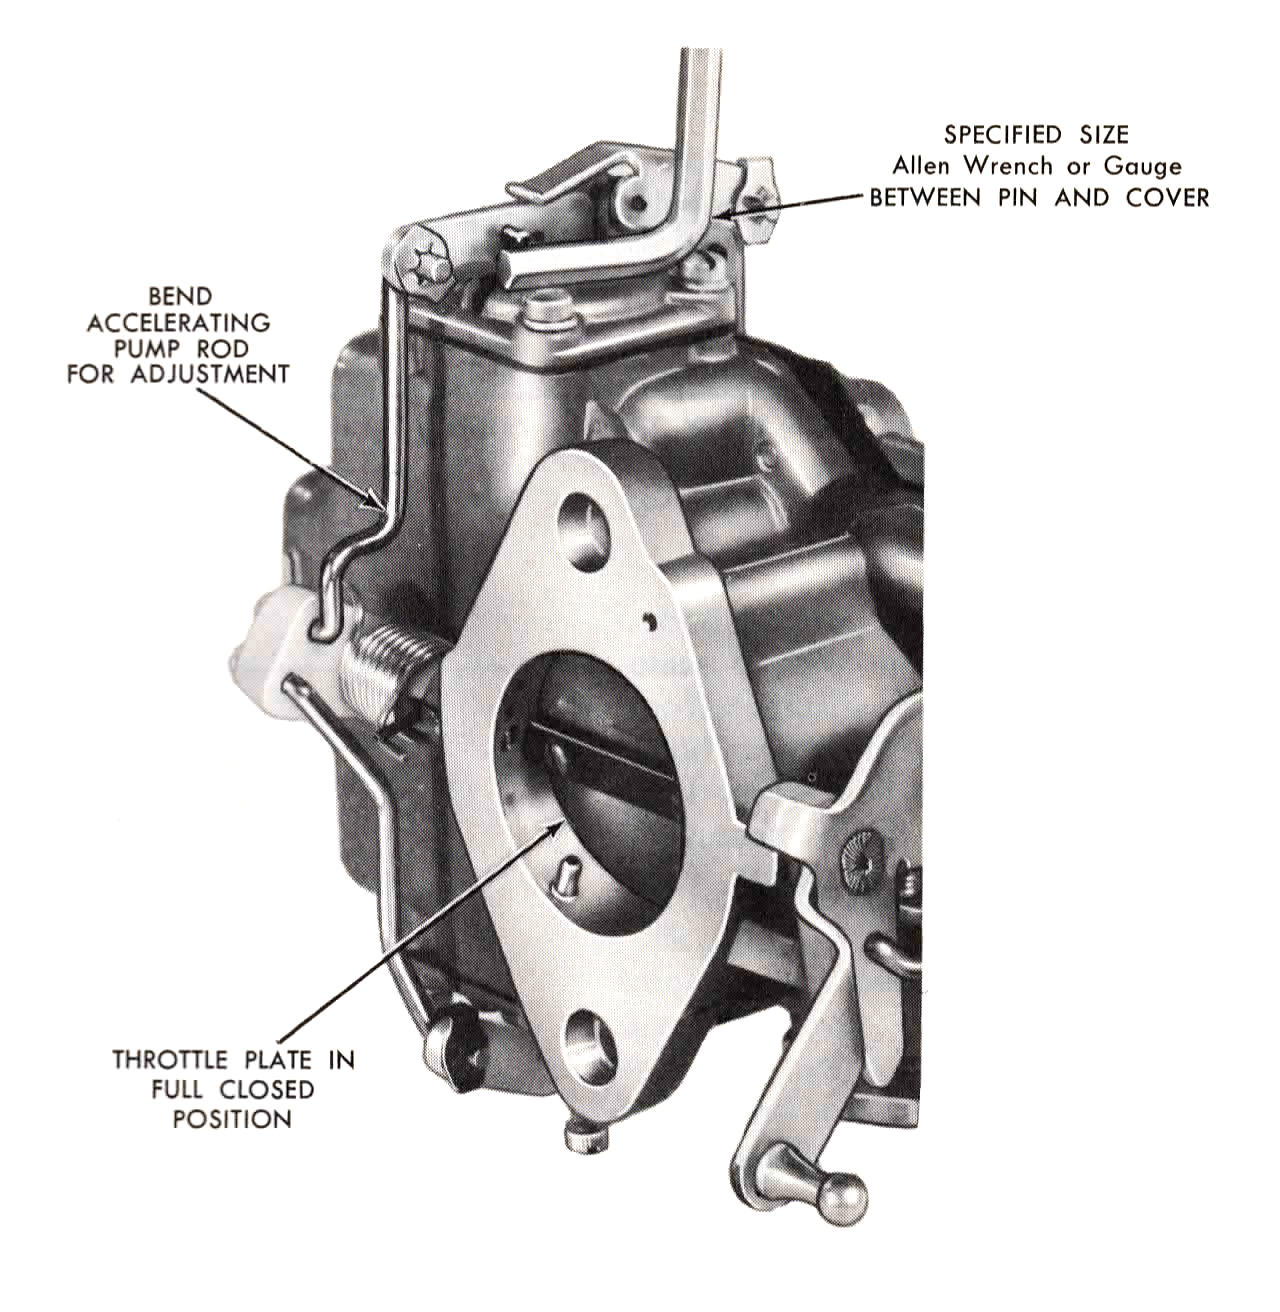 How to adjust the carburetor on a moped